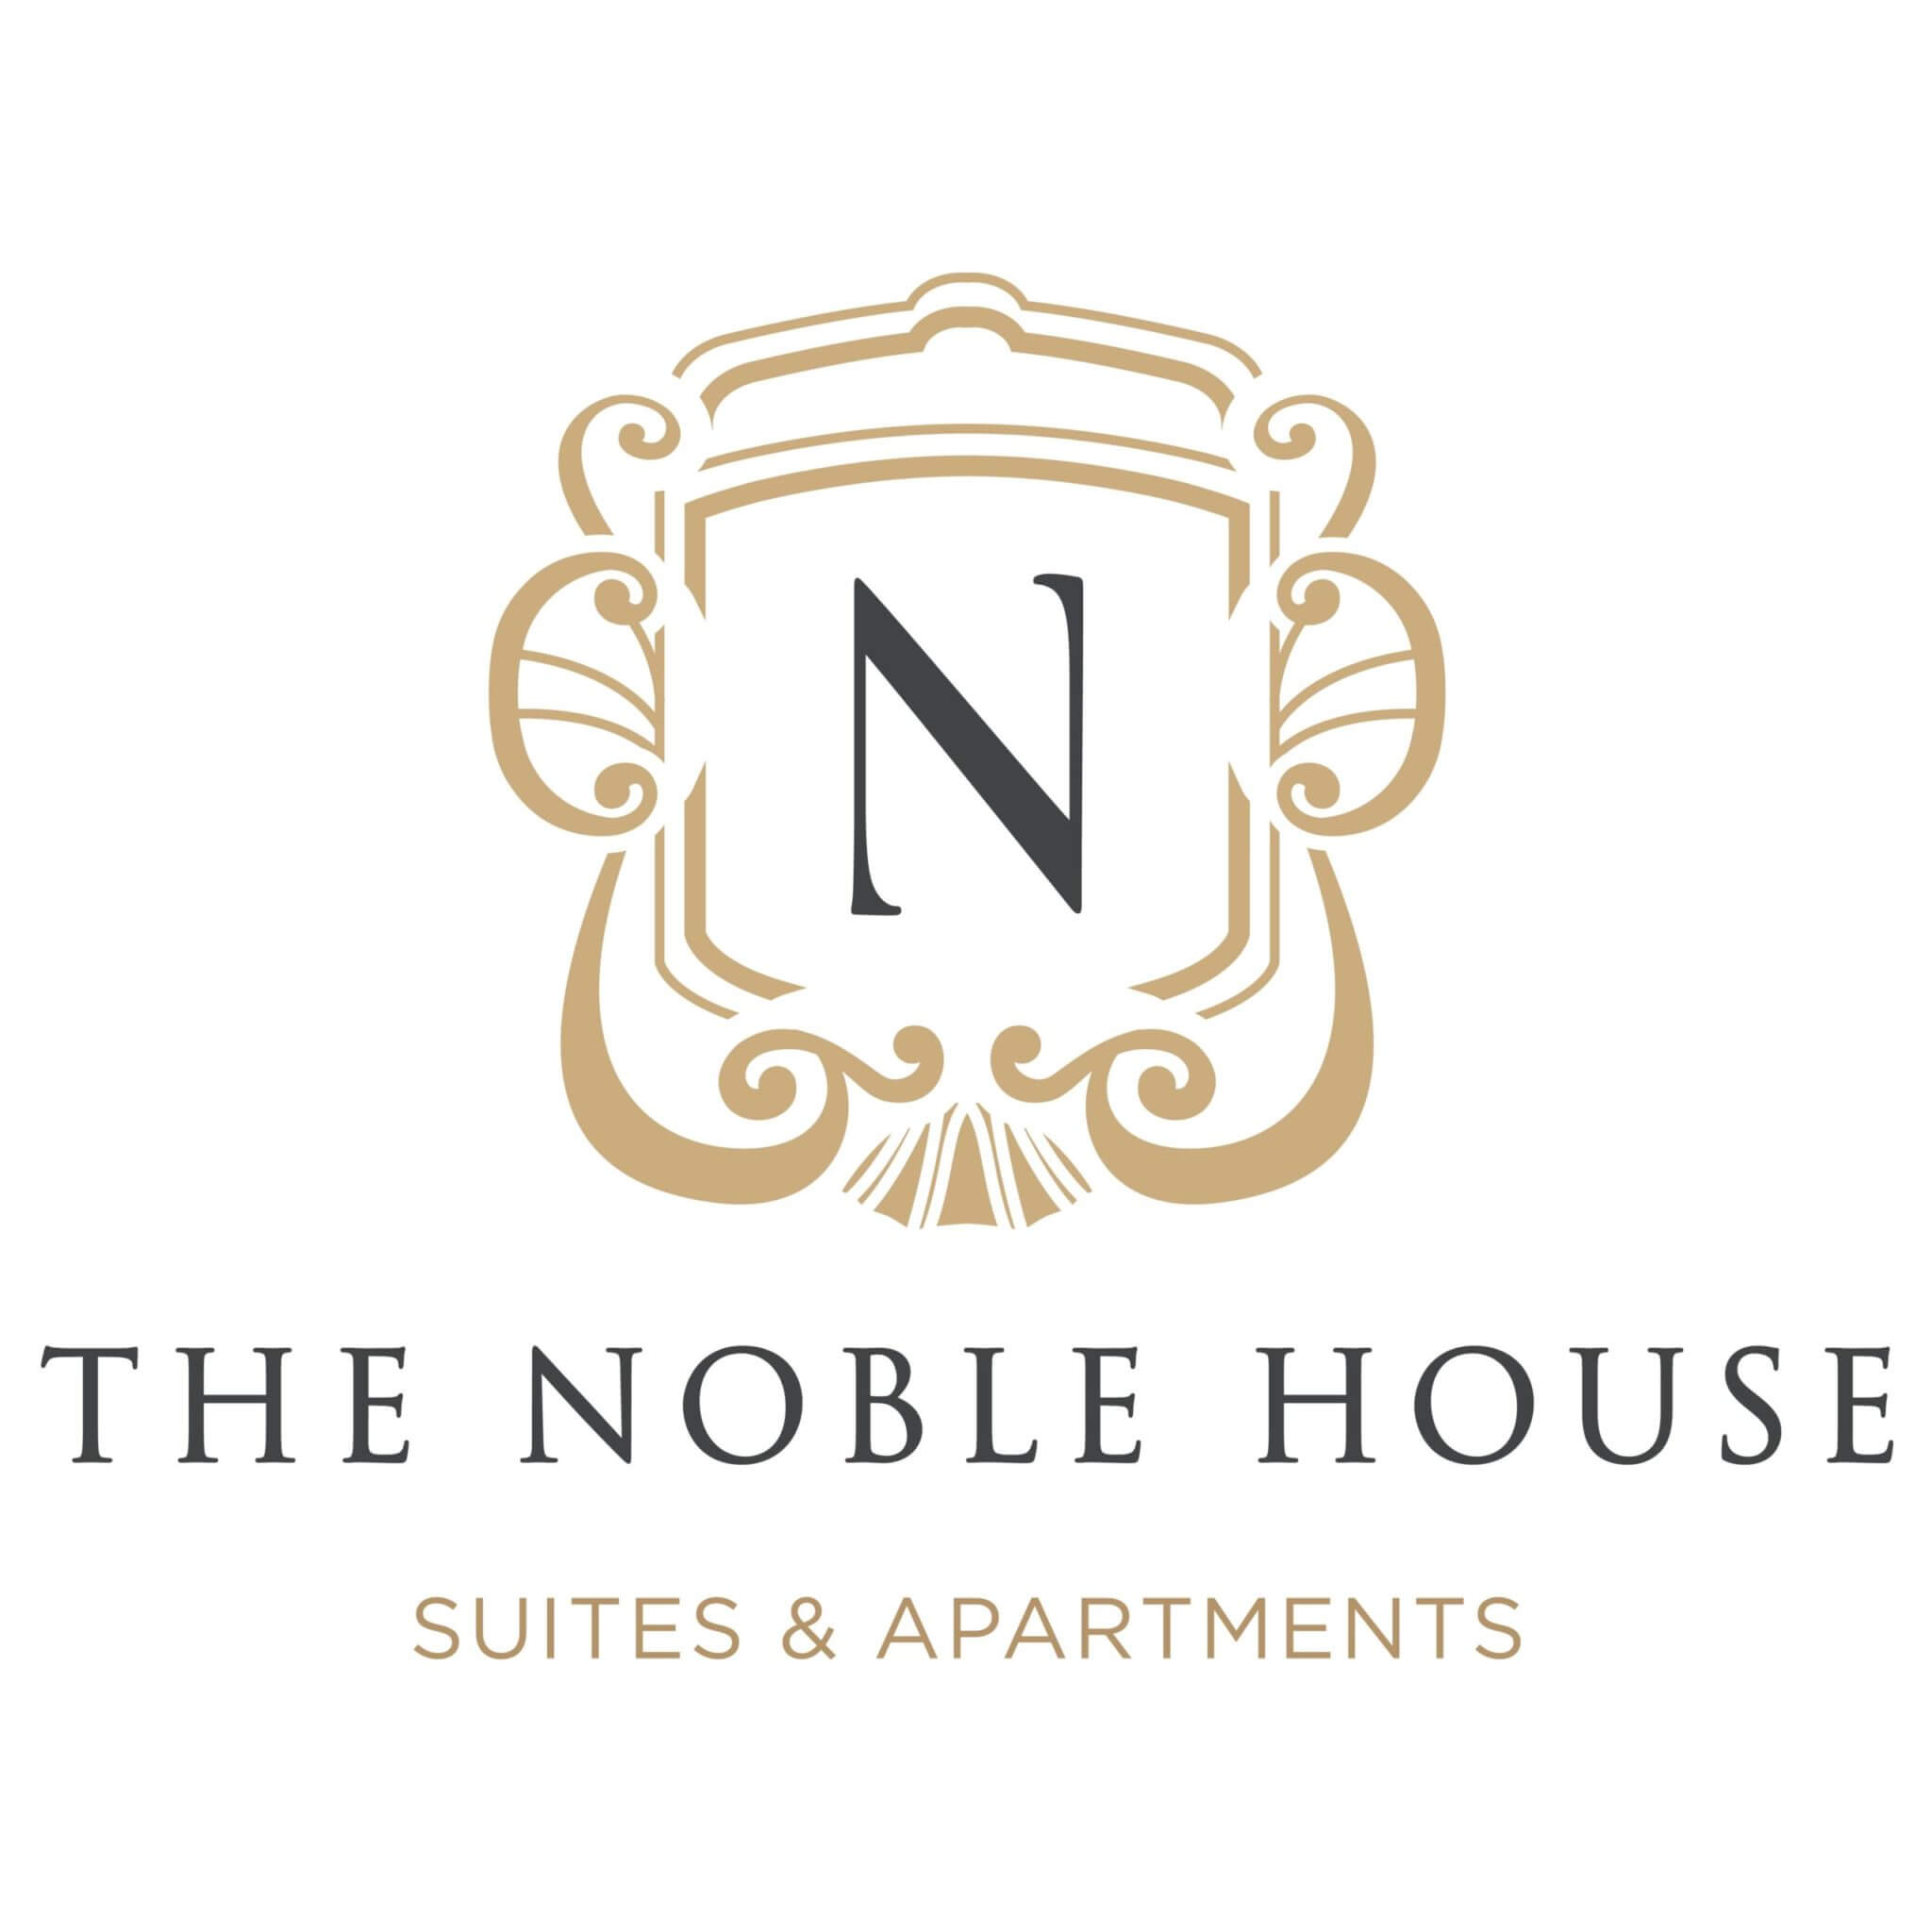 The Noble House Suites & Apartments